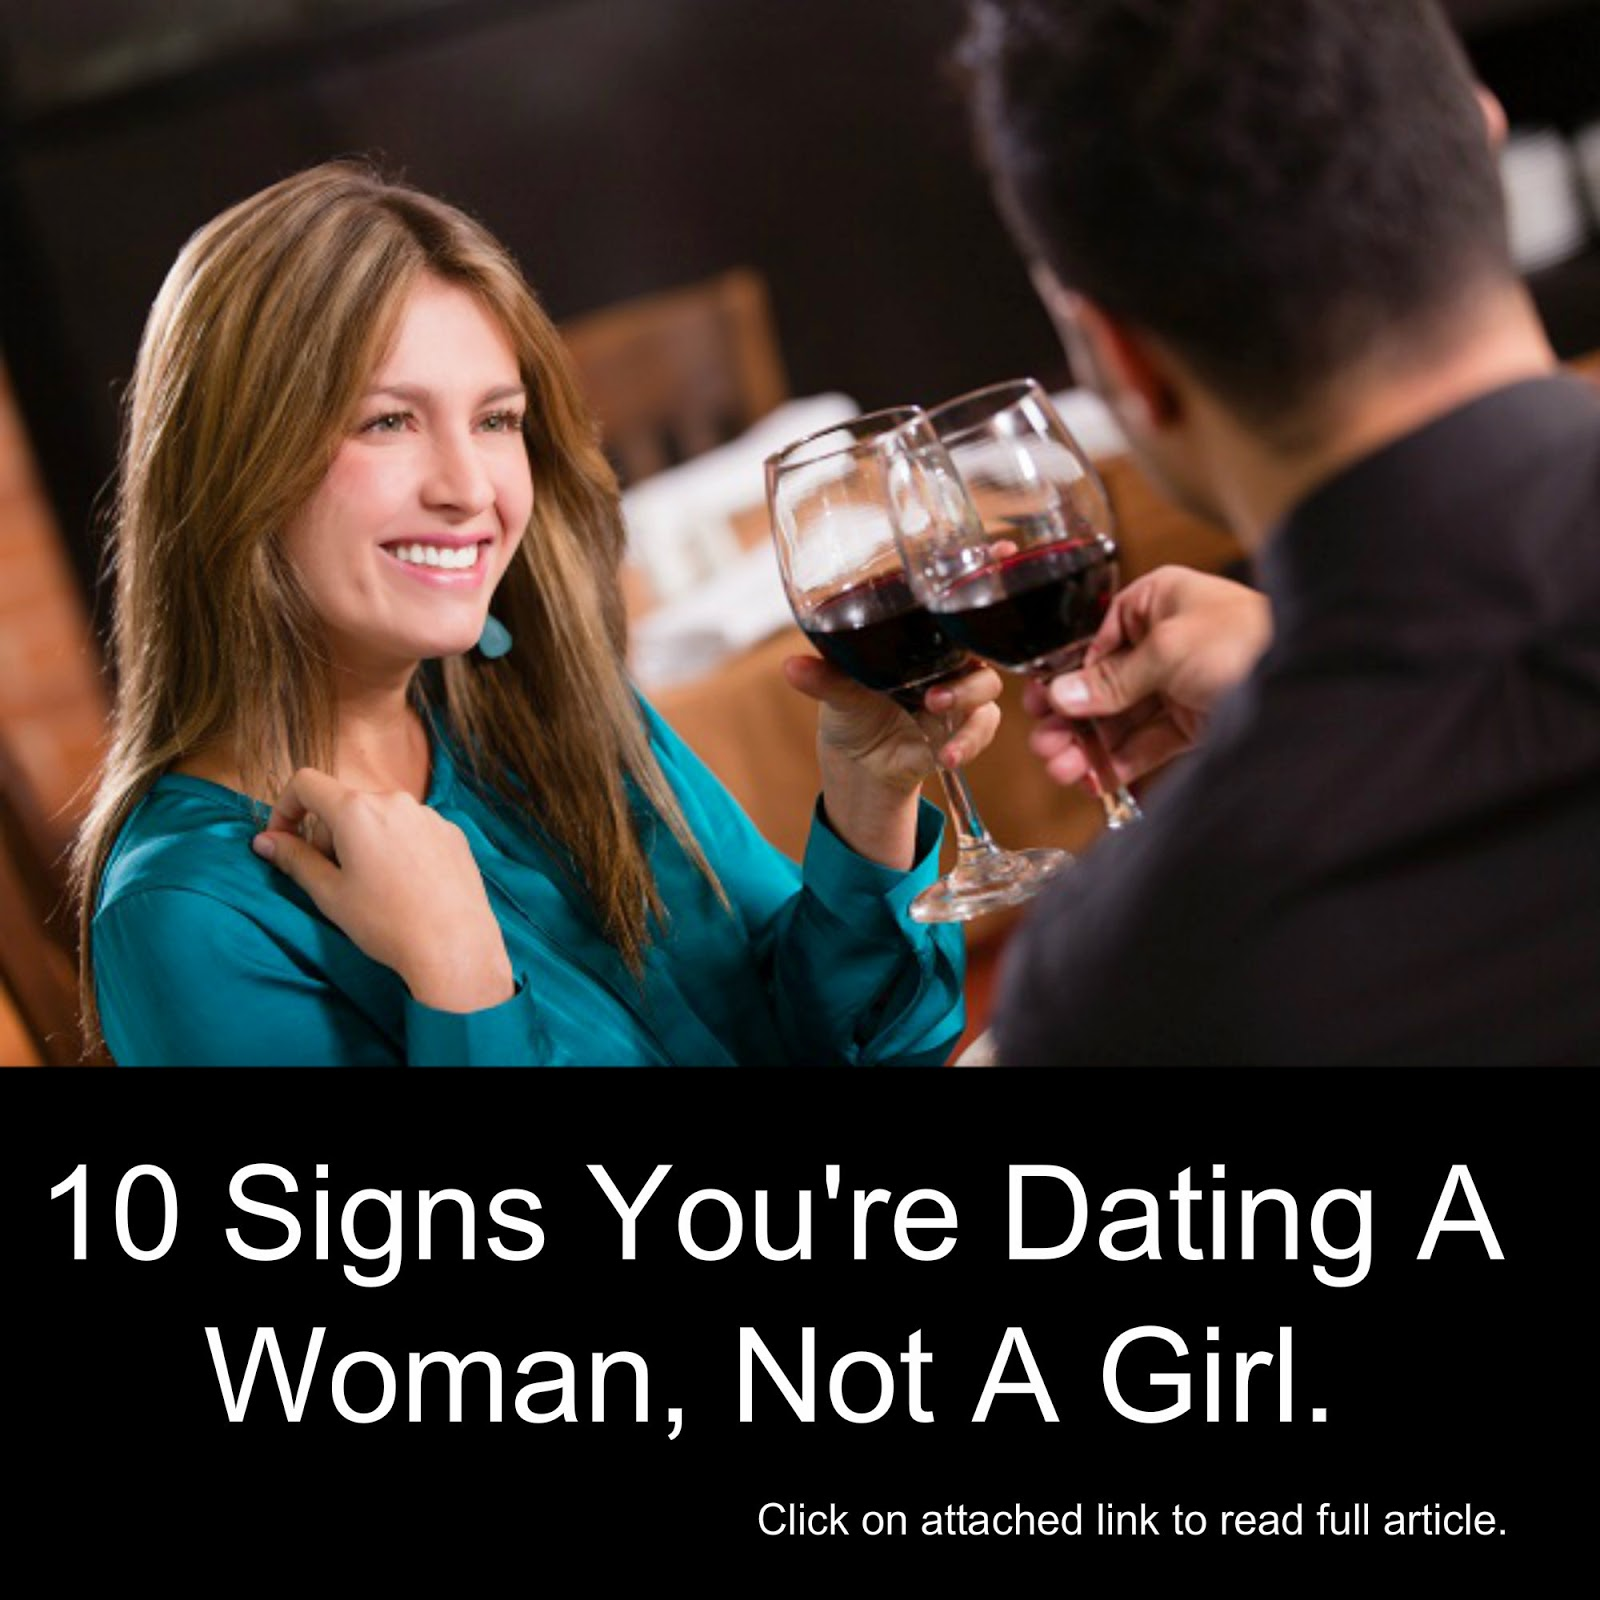 signs dating woman not girl Nobody want relationship with a girl these days everyone are looking for a woman to date women can act younger than girls, but girls can't act like a woman it is about the way they act women and girls see things in an different waysit is not very easy to find a good woman but [].